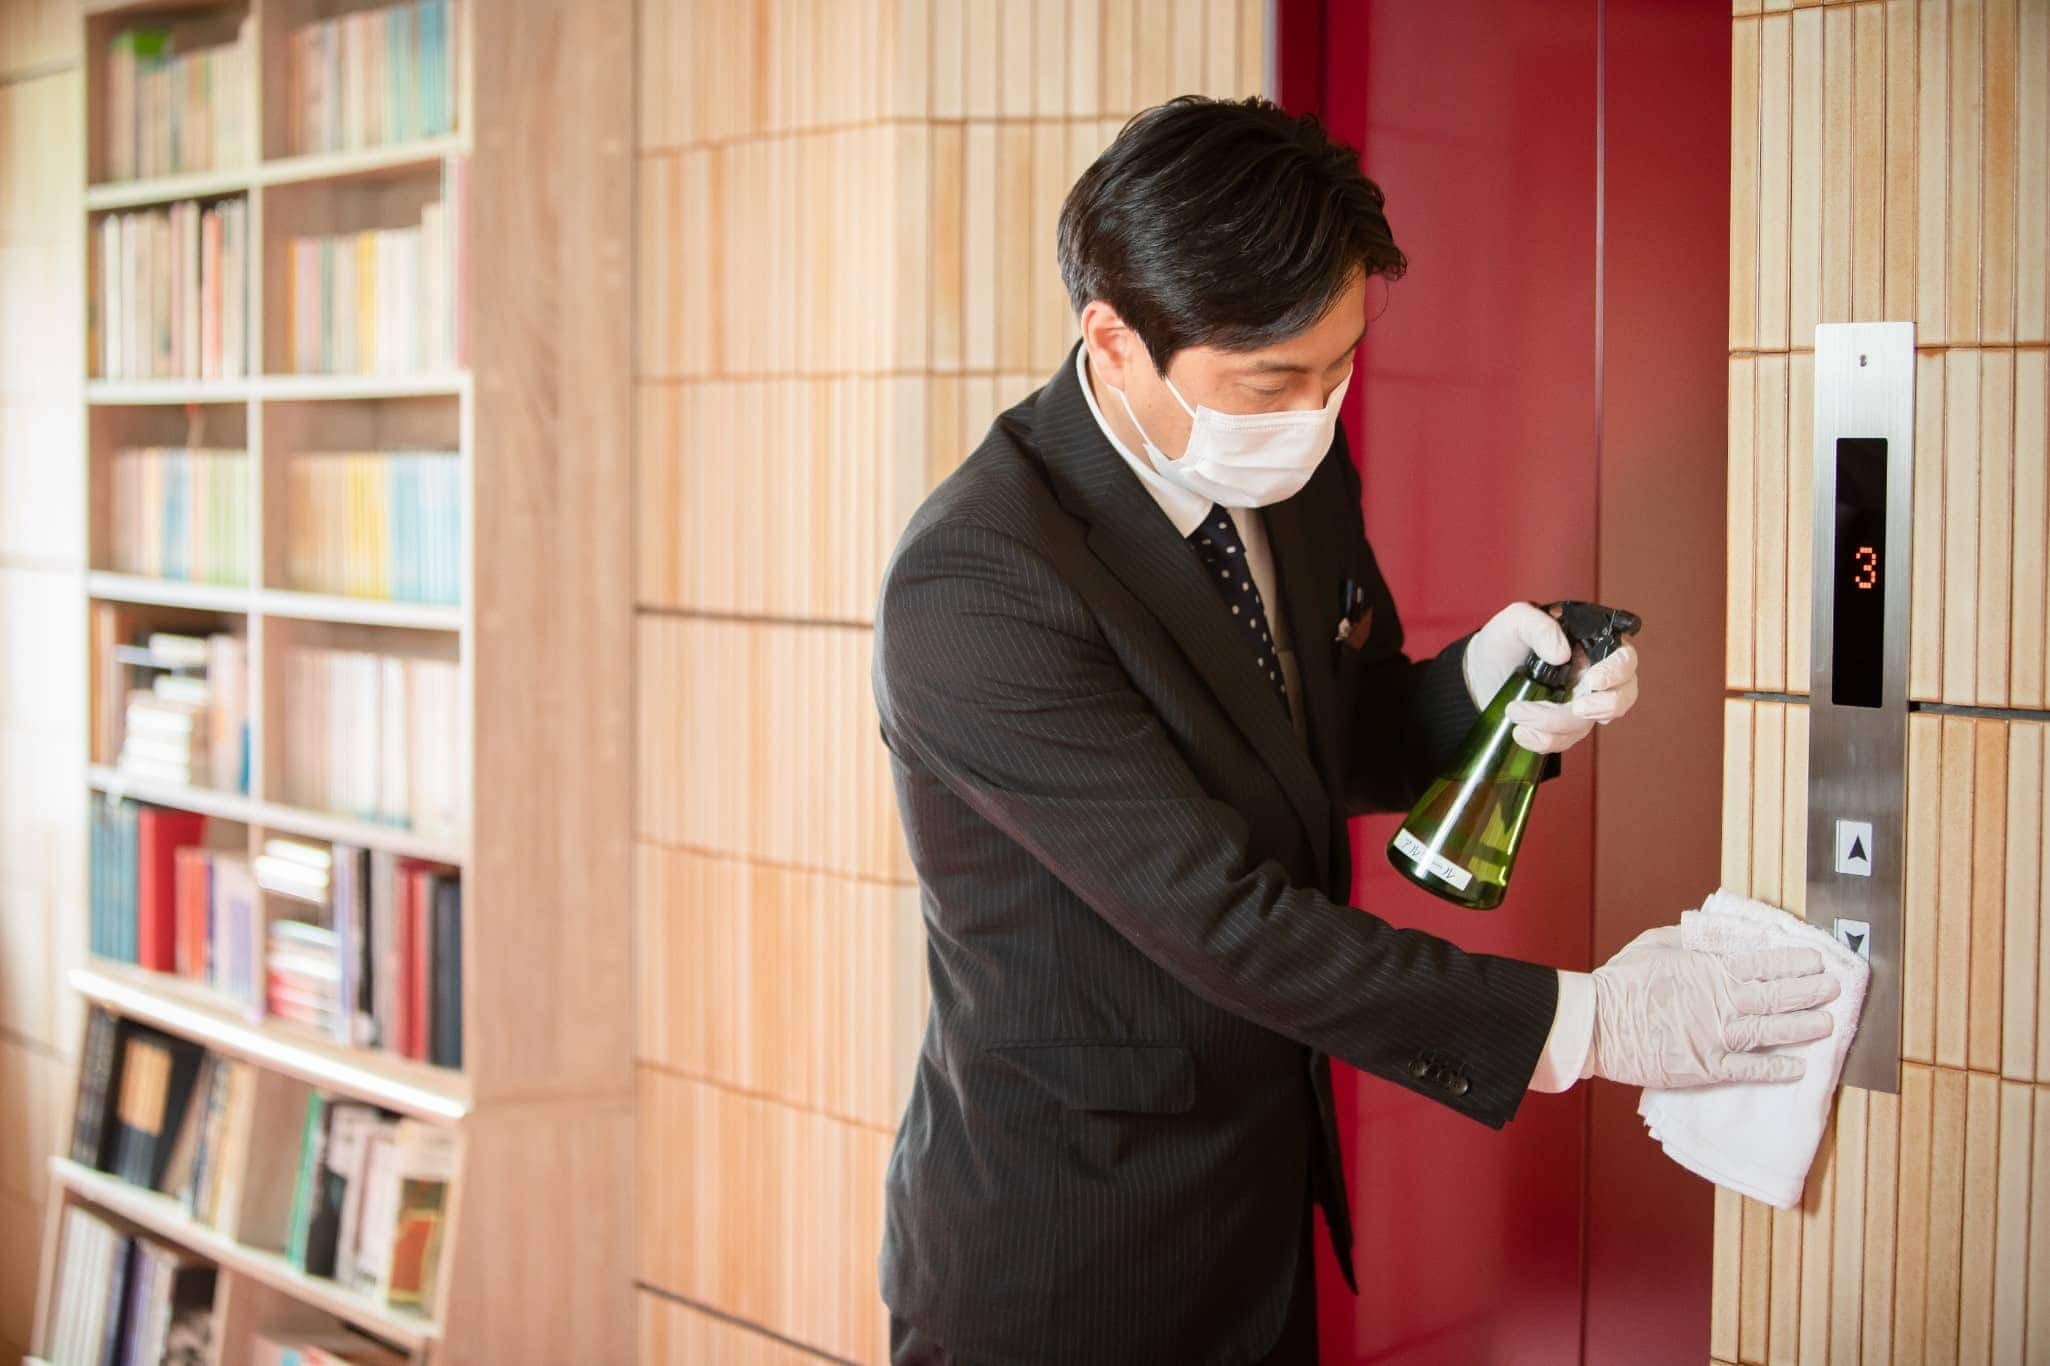 High-Touch areas are increase cleaning frequency with alcohol.